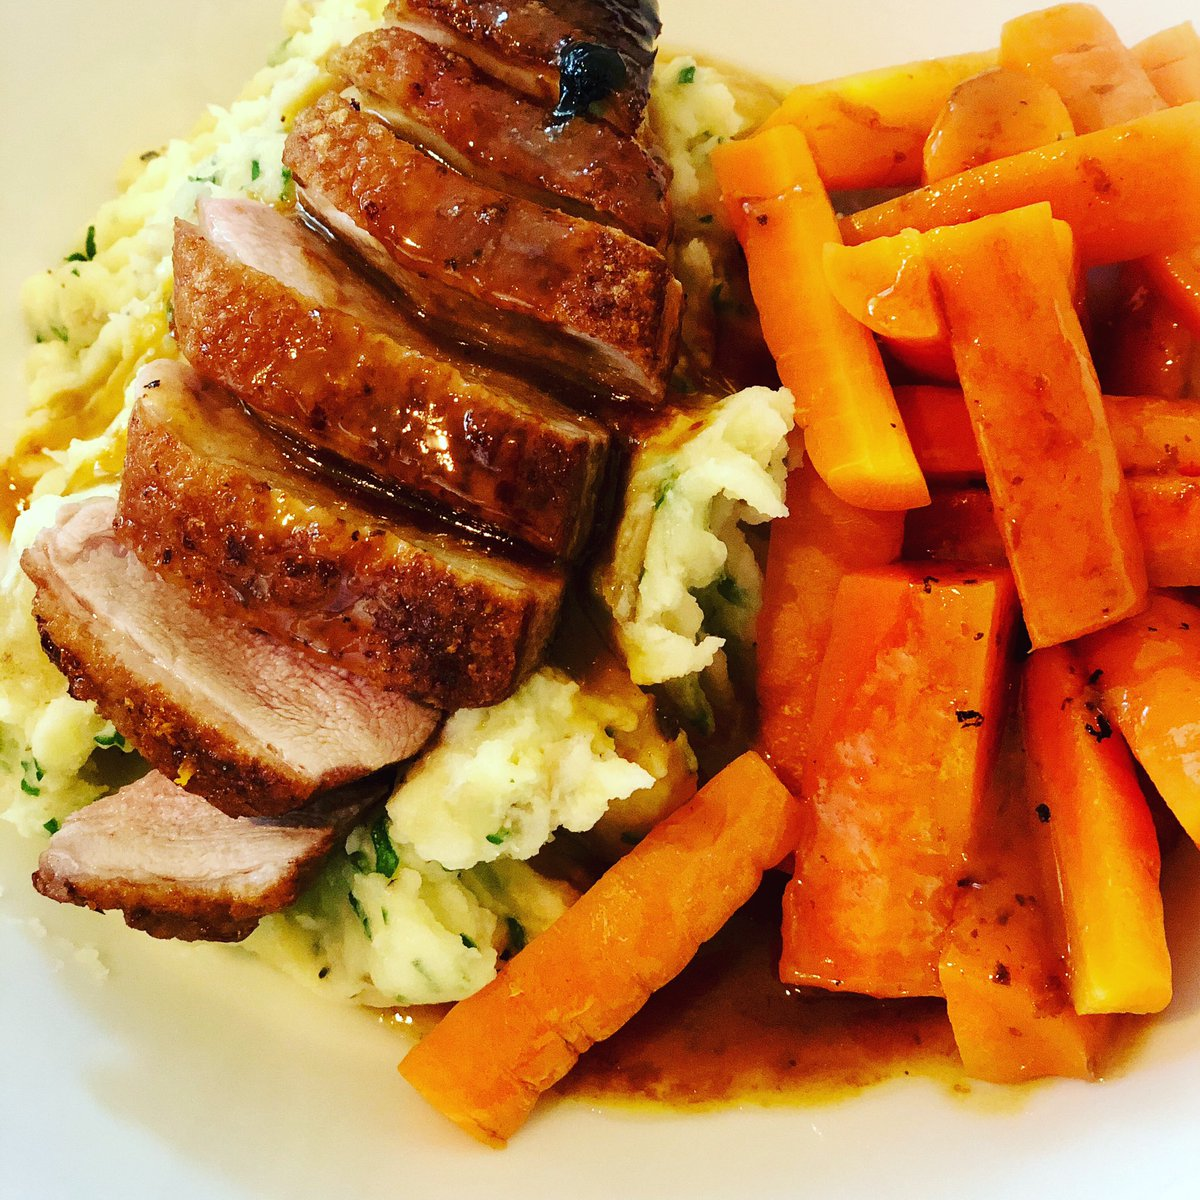 A treat for dinner this evening, Duck A L'Orange with parsley mash and carrots mmmmm #honemade #comfortfood #instafood 🦆🍊🥔😂 oh and beer 🍺